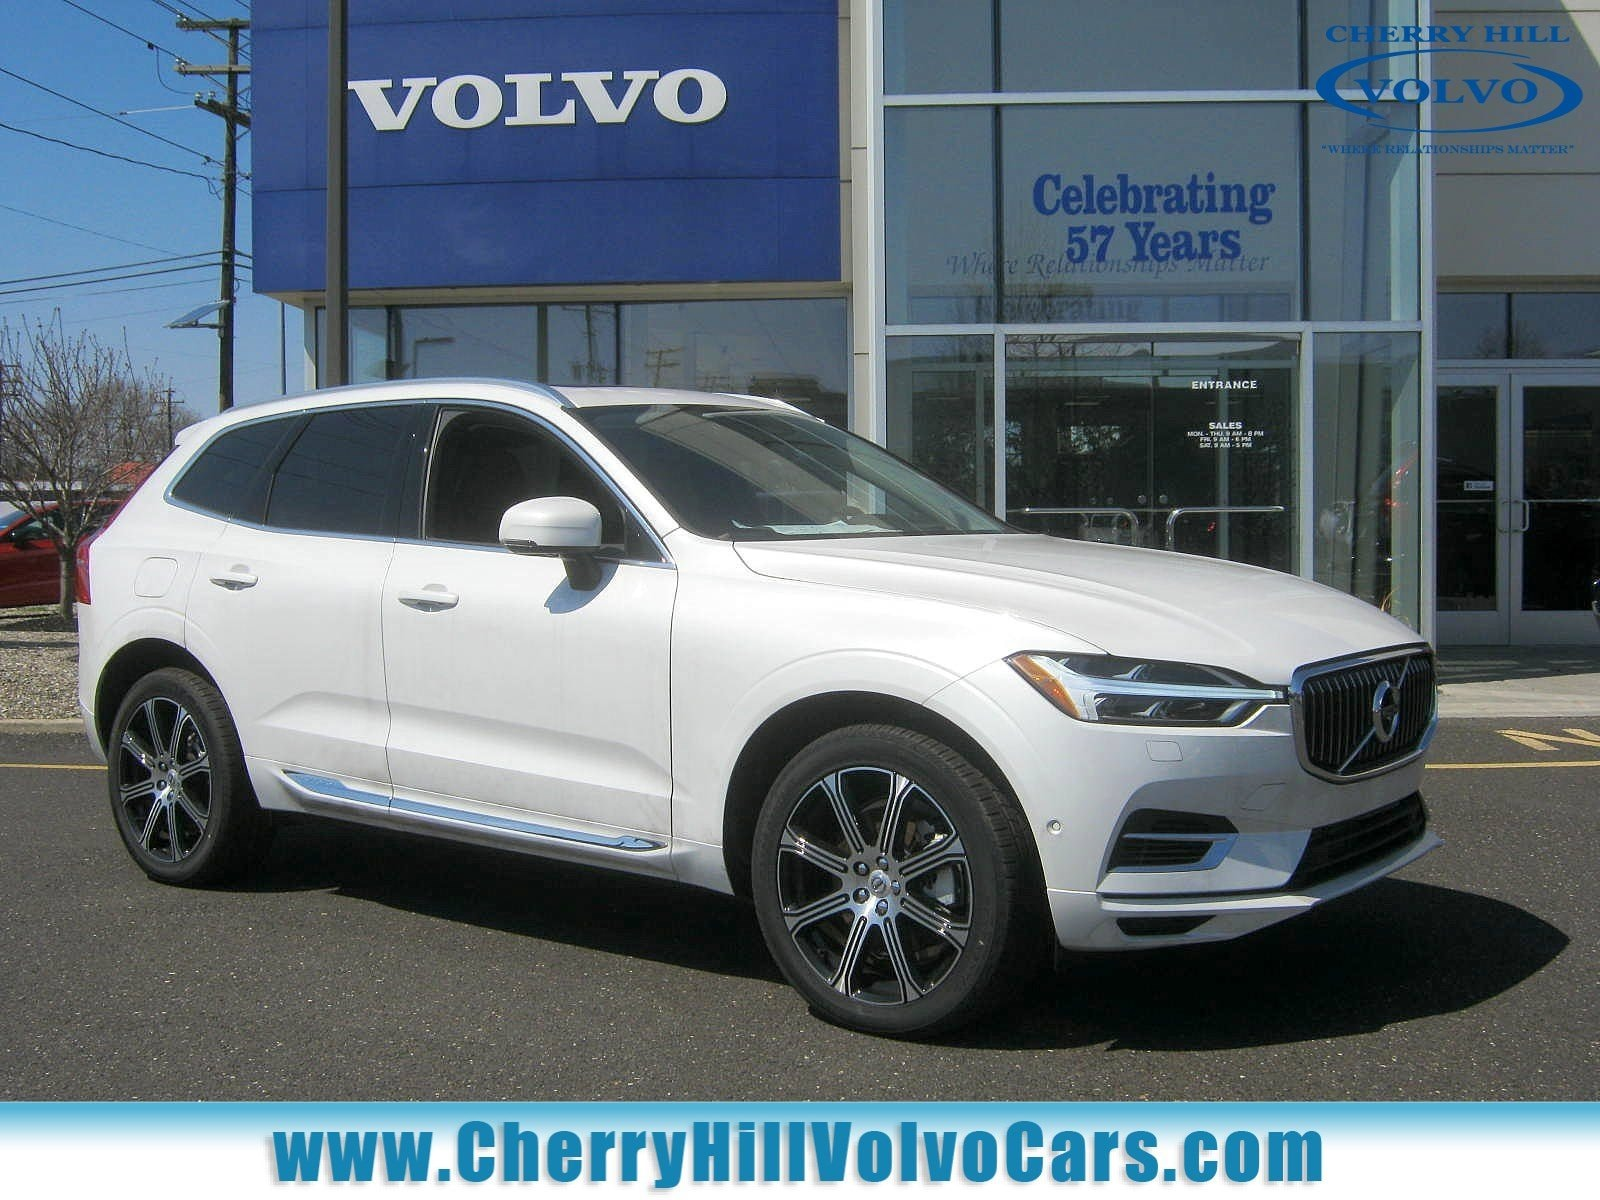 2018 Volvo XC60 Hybrid T8 Inscription SUV